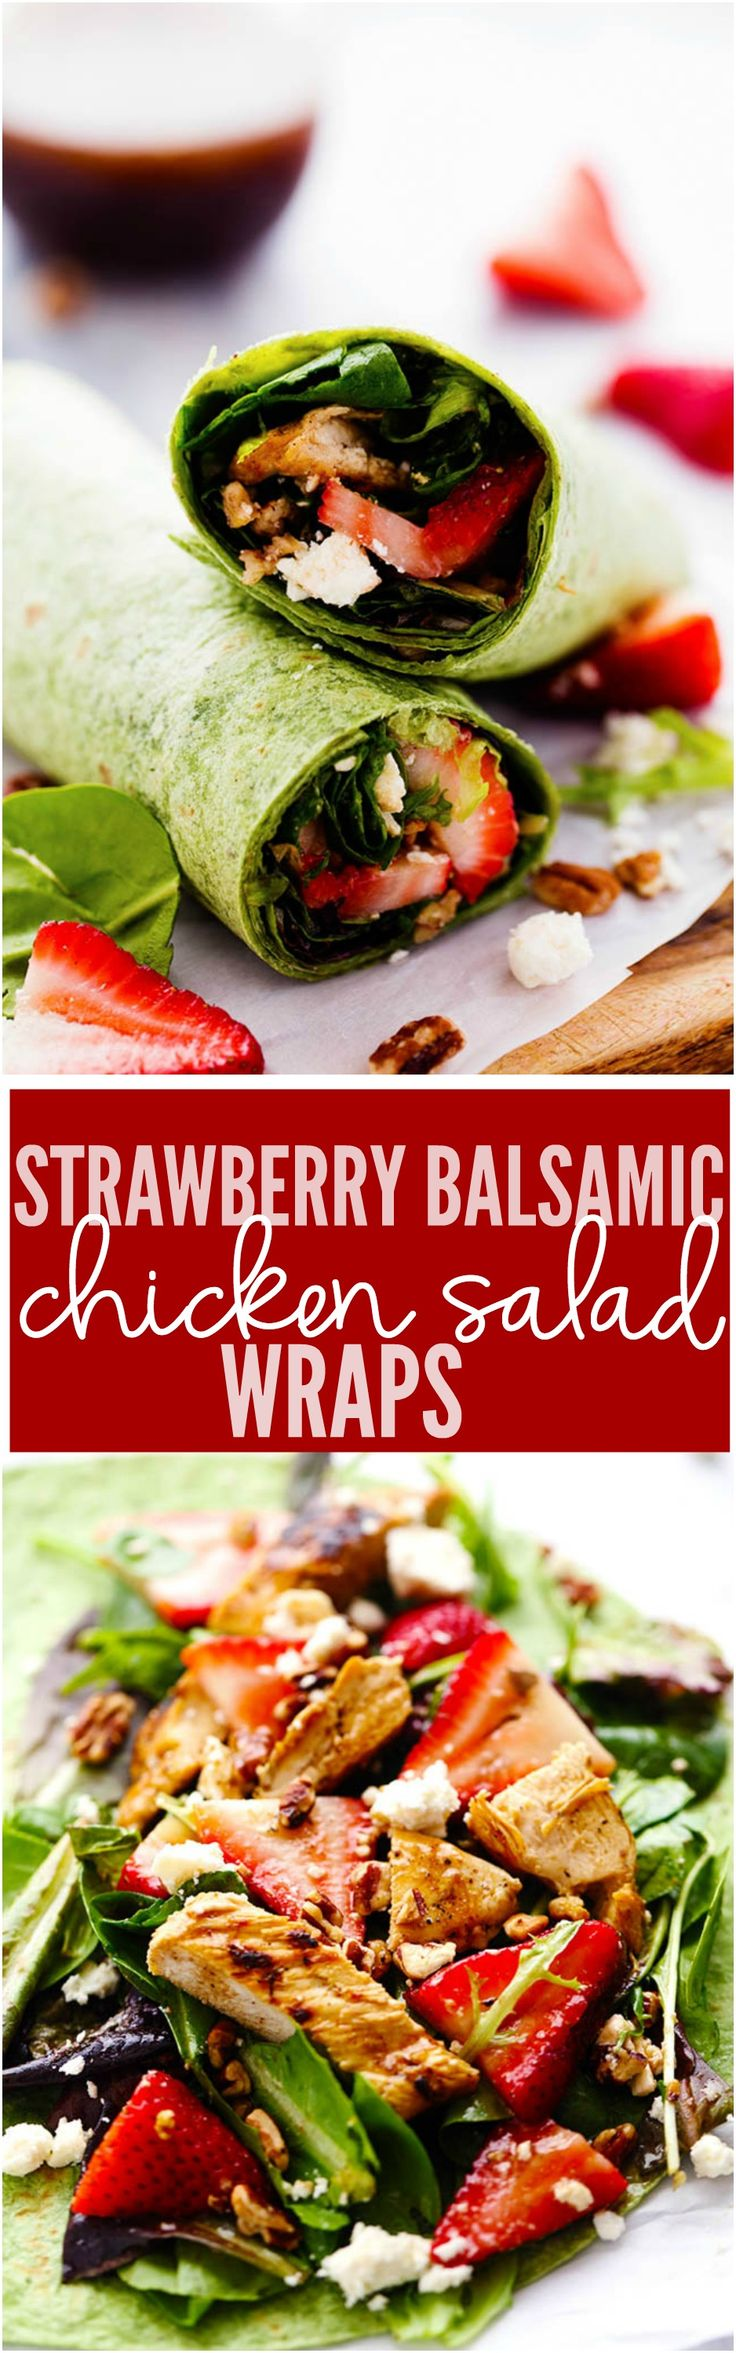 Fresh Spring greens, strawberries, crunchy pecans, chicken, and feta cheese come together in this delicious and healthy wrap. It is drizzled in balsamic dressing and the flavor is amazing!